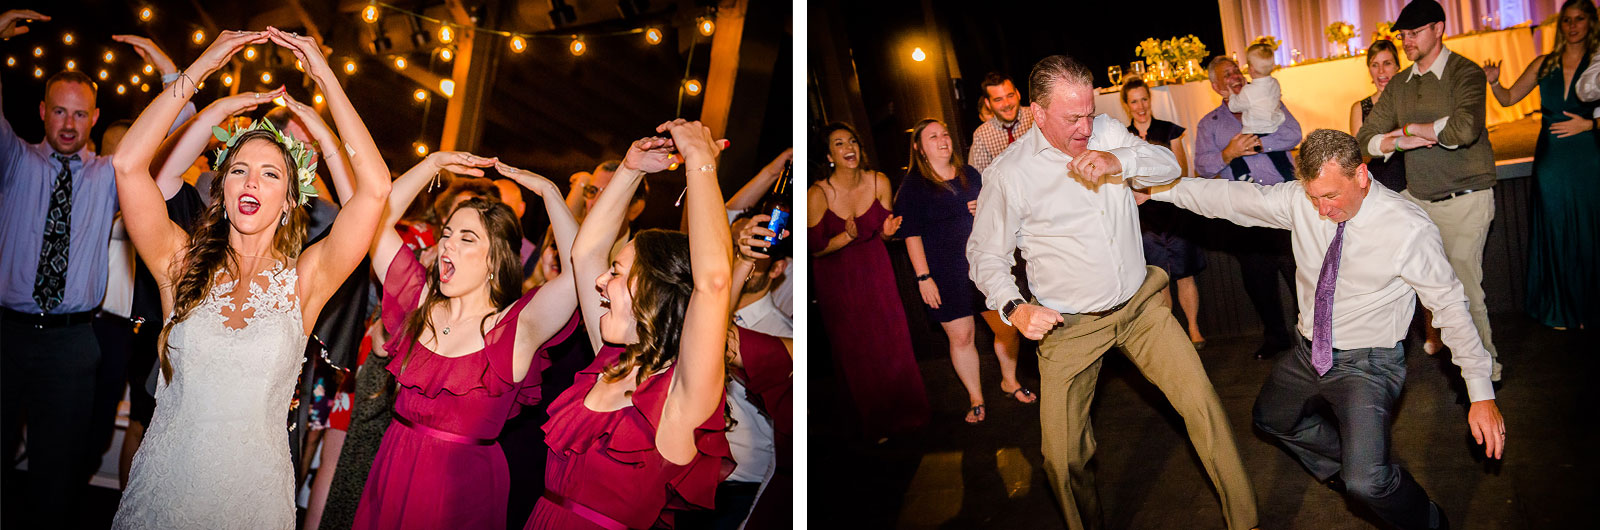 Eric_and_Christy_Photography_Blog_Stephanie_Nick_Wedding-110-111